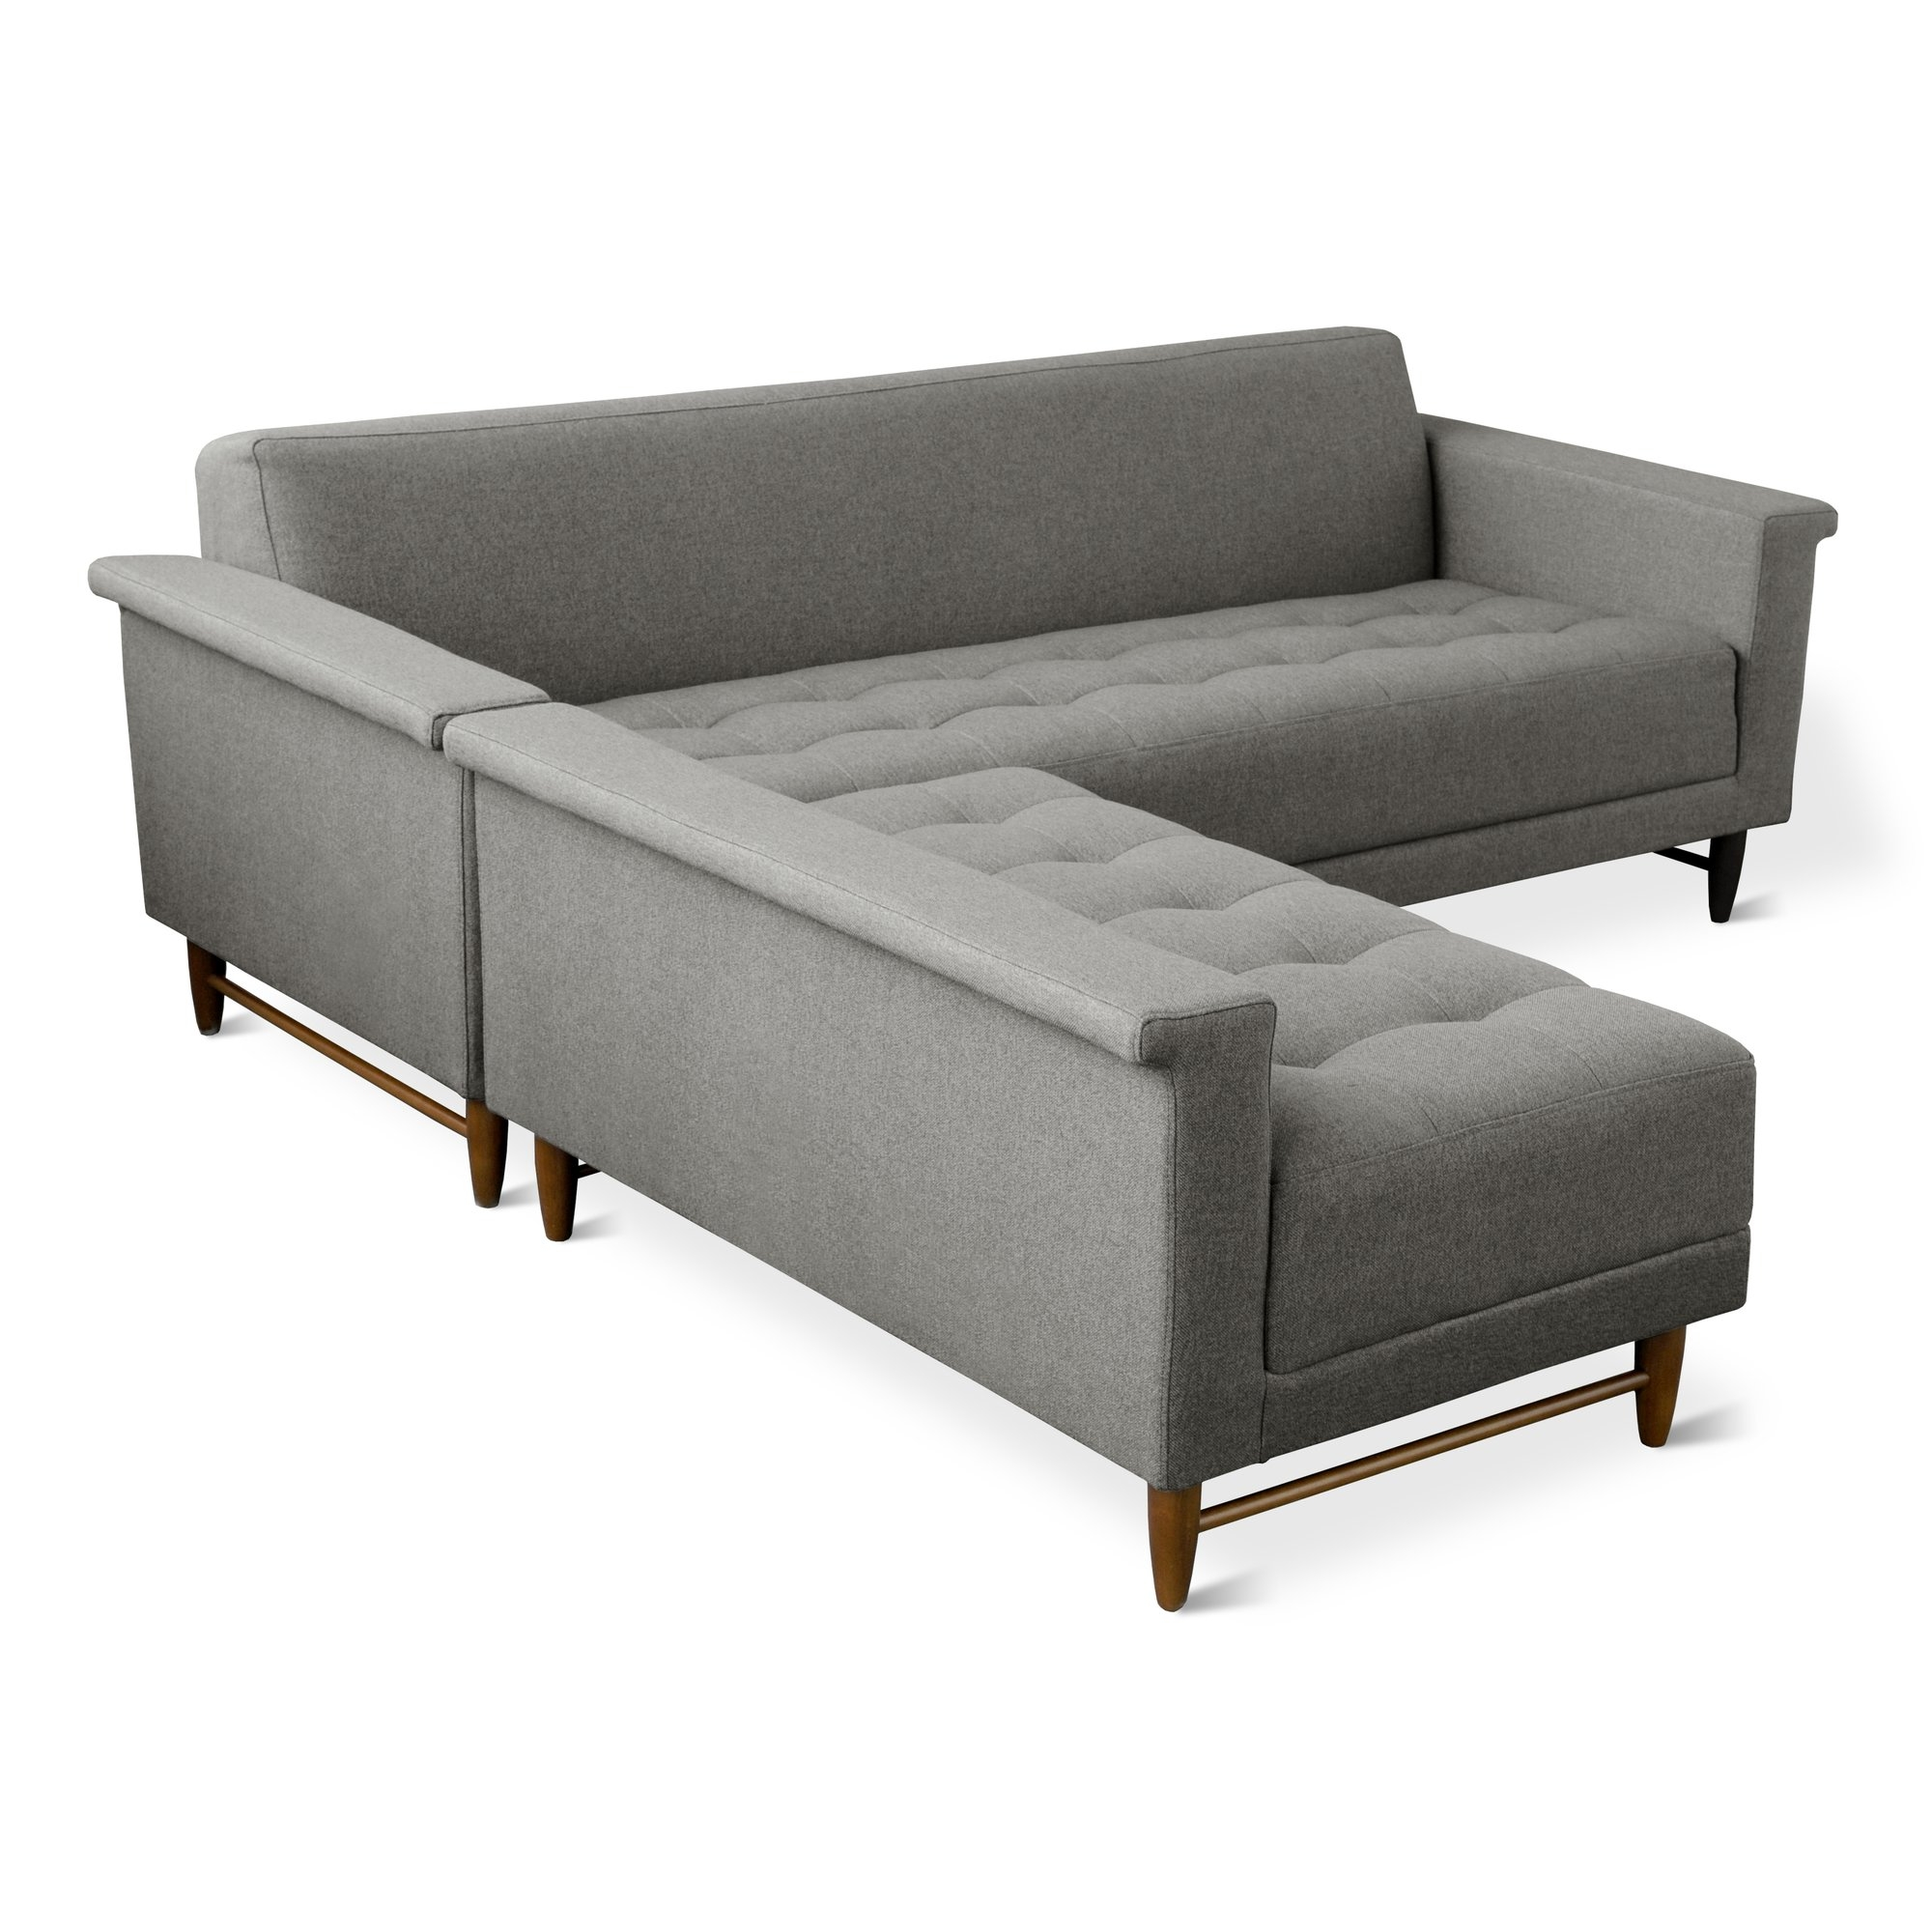 12 of Bisectional Sofa